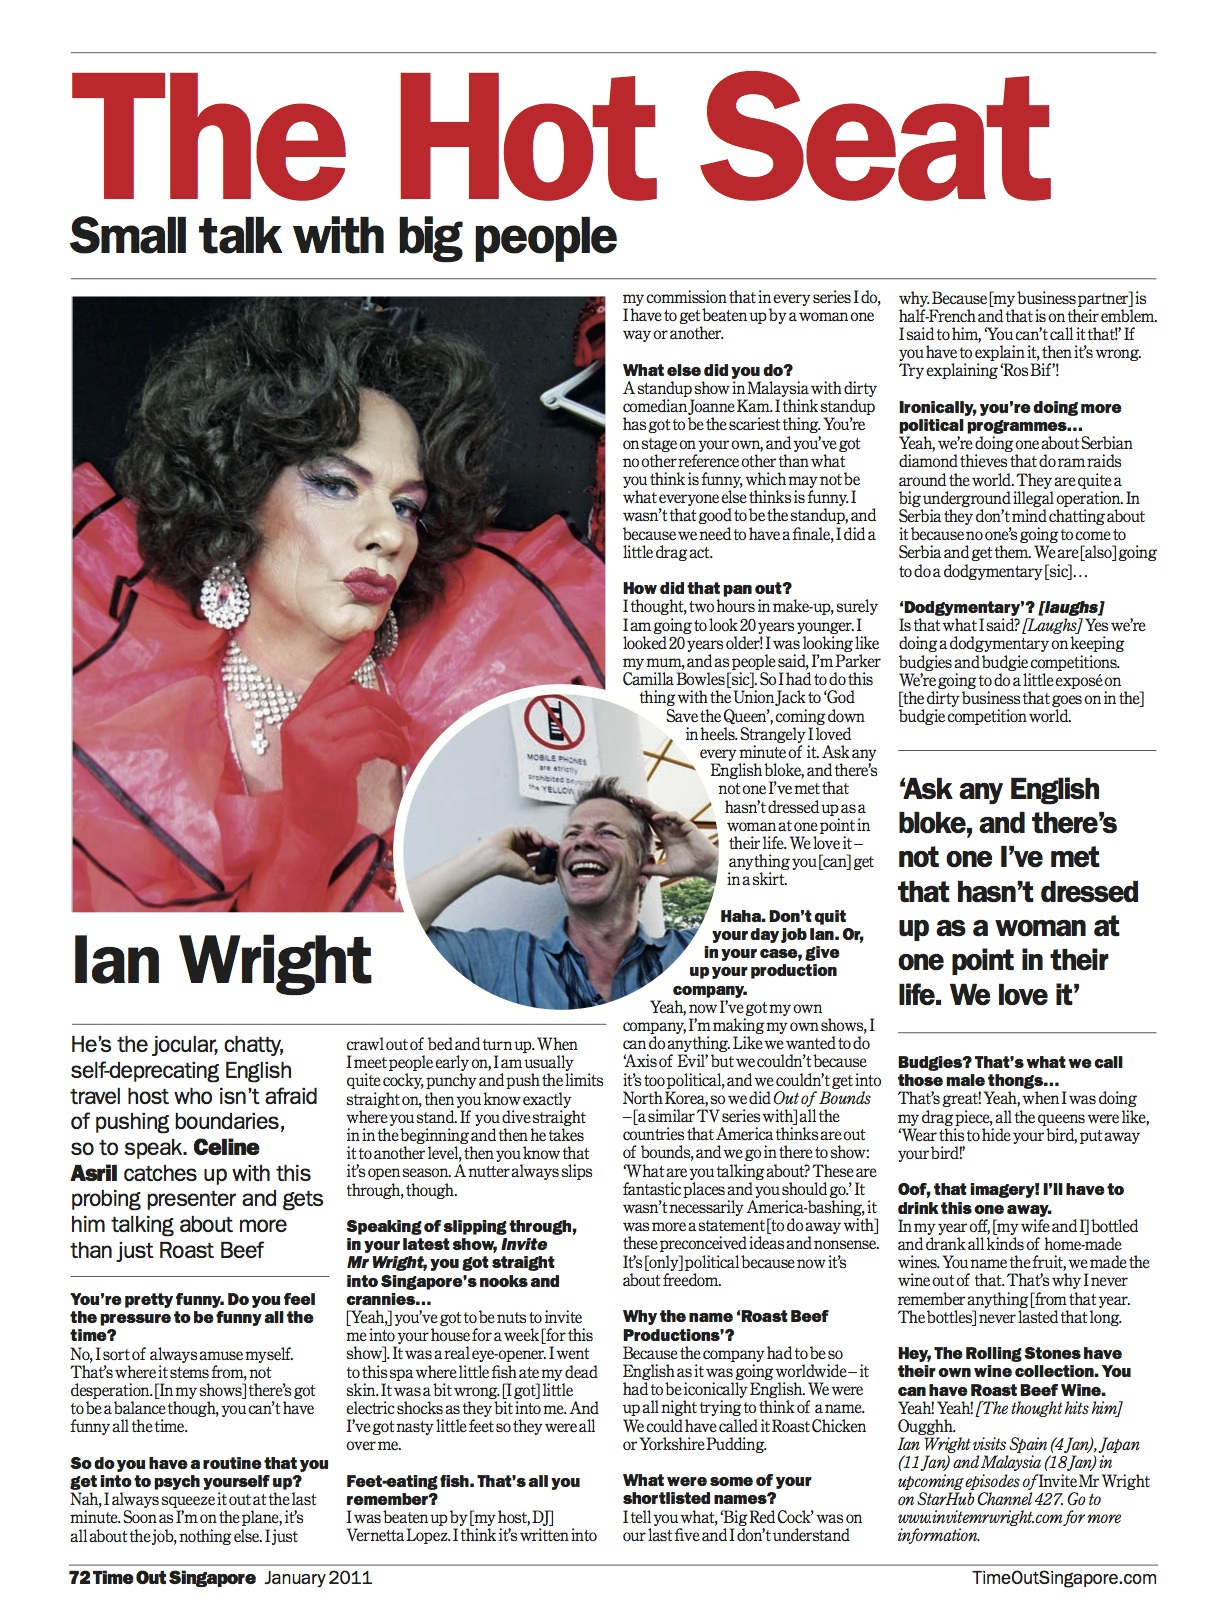 Ian Wright in Time Out Singapore's 'The Hot Seat'